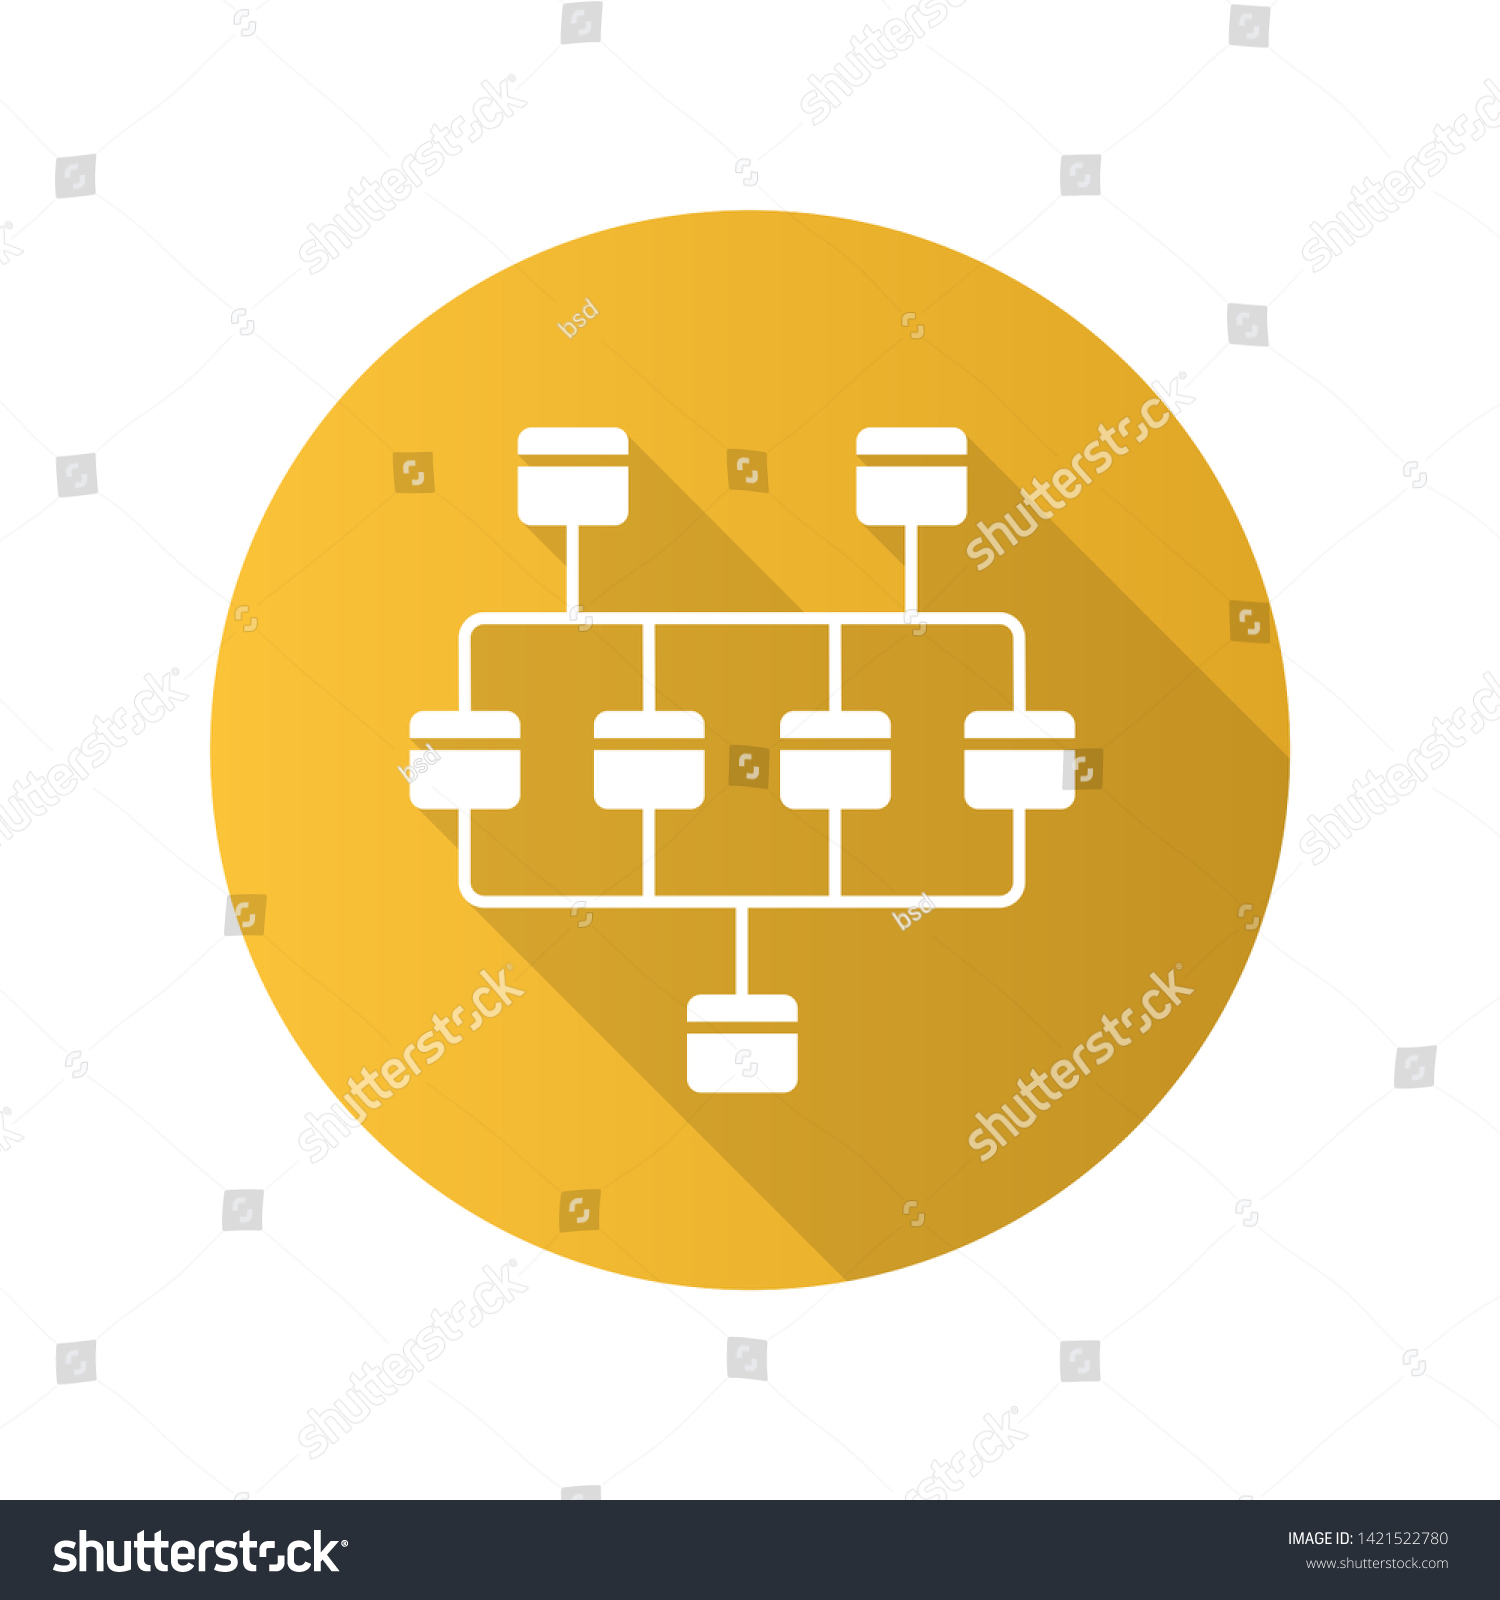 hight resolution of network diagram flat design long shadow glyph icon cluster diagram vertices and edges of